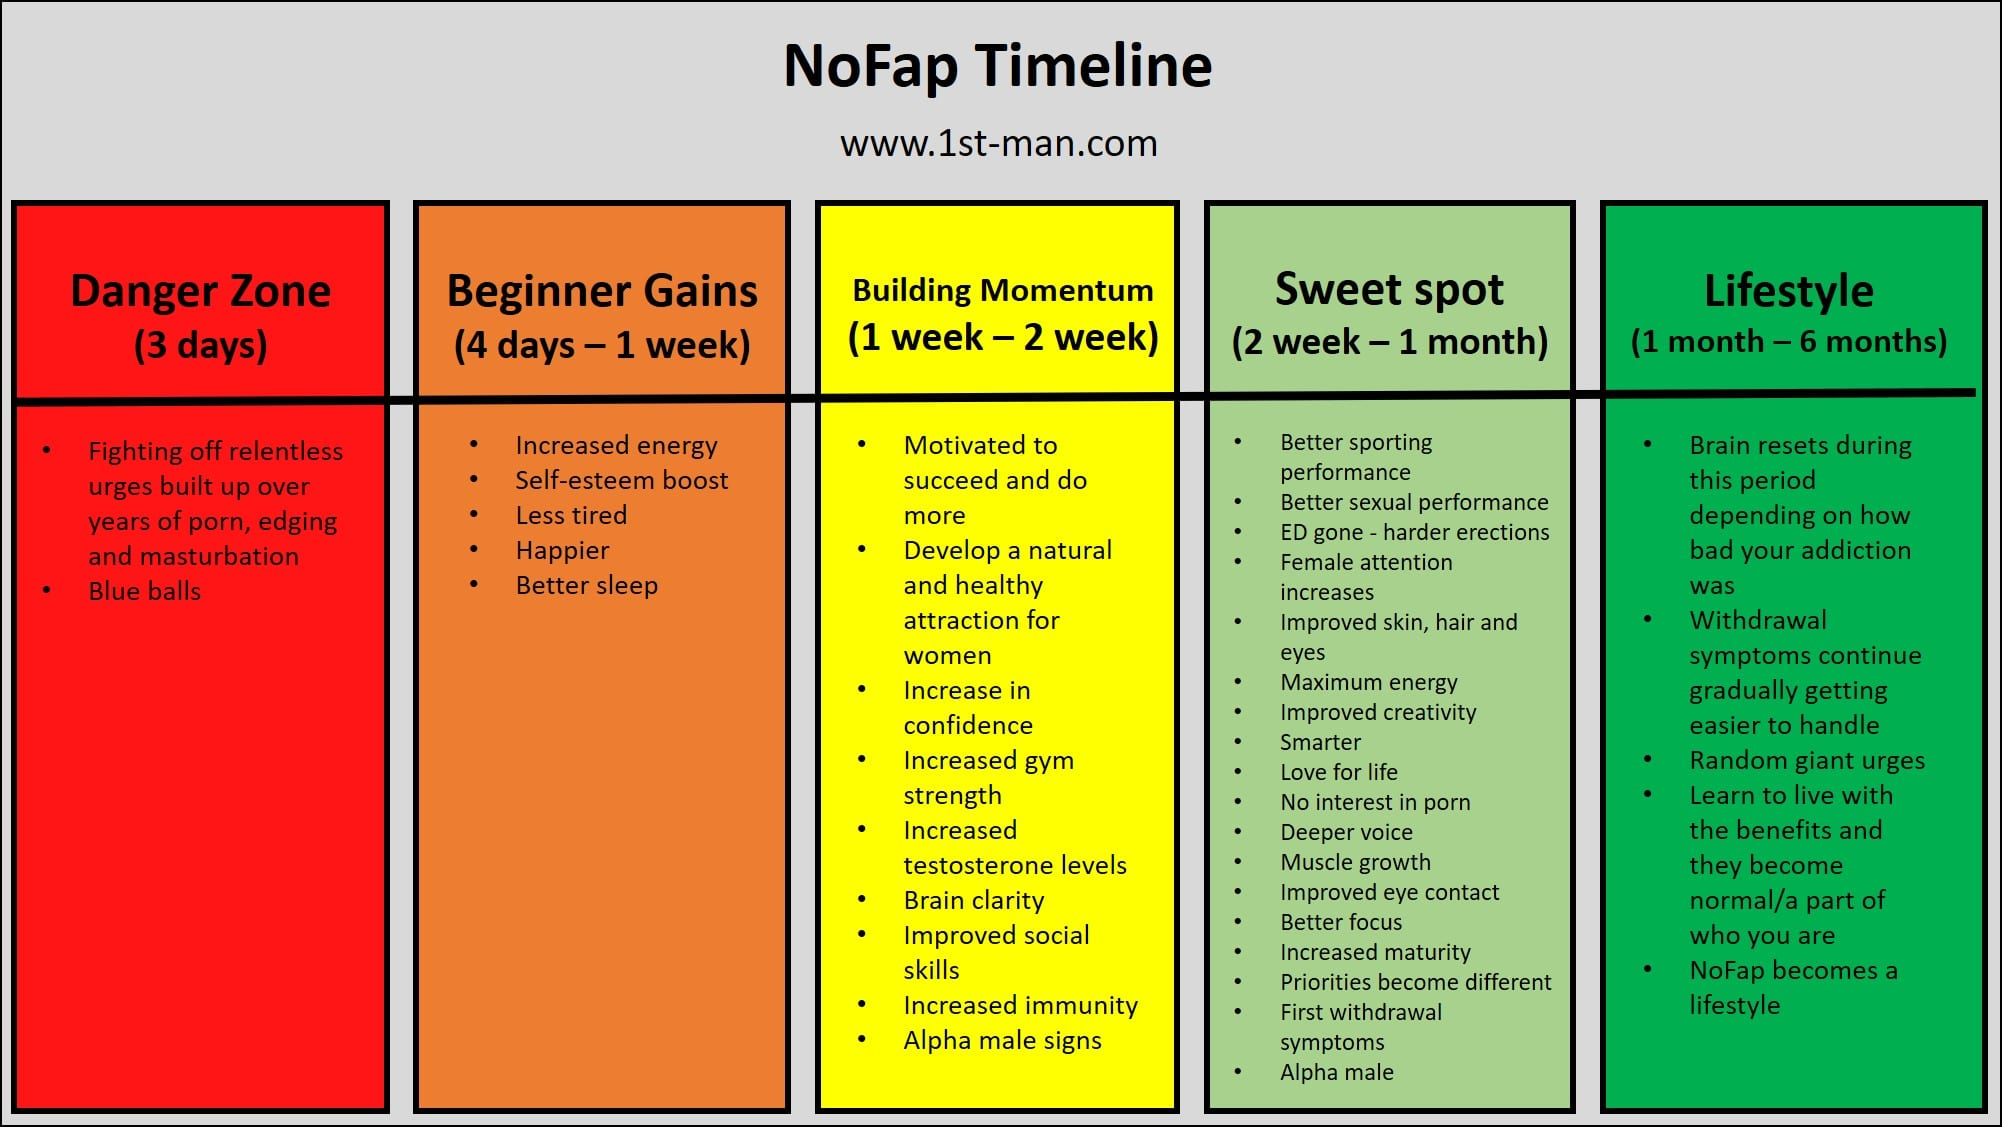 Benefits of NoFap and NoFap timeline - 1M